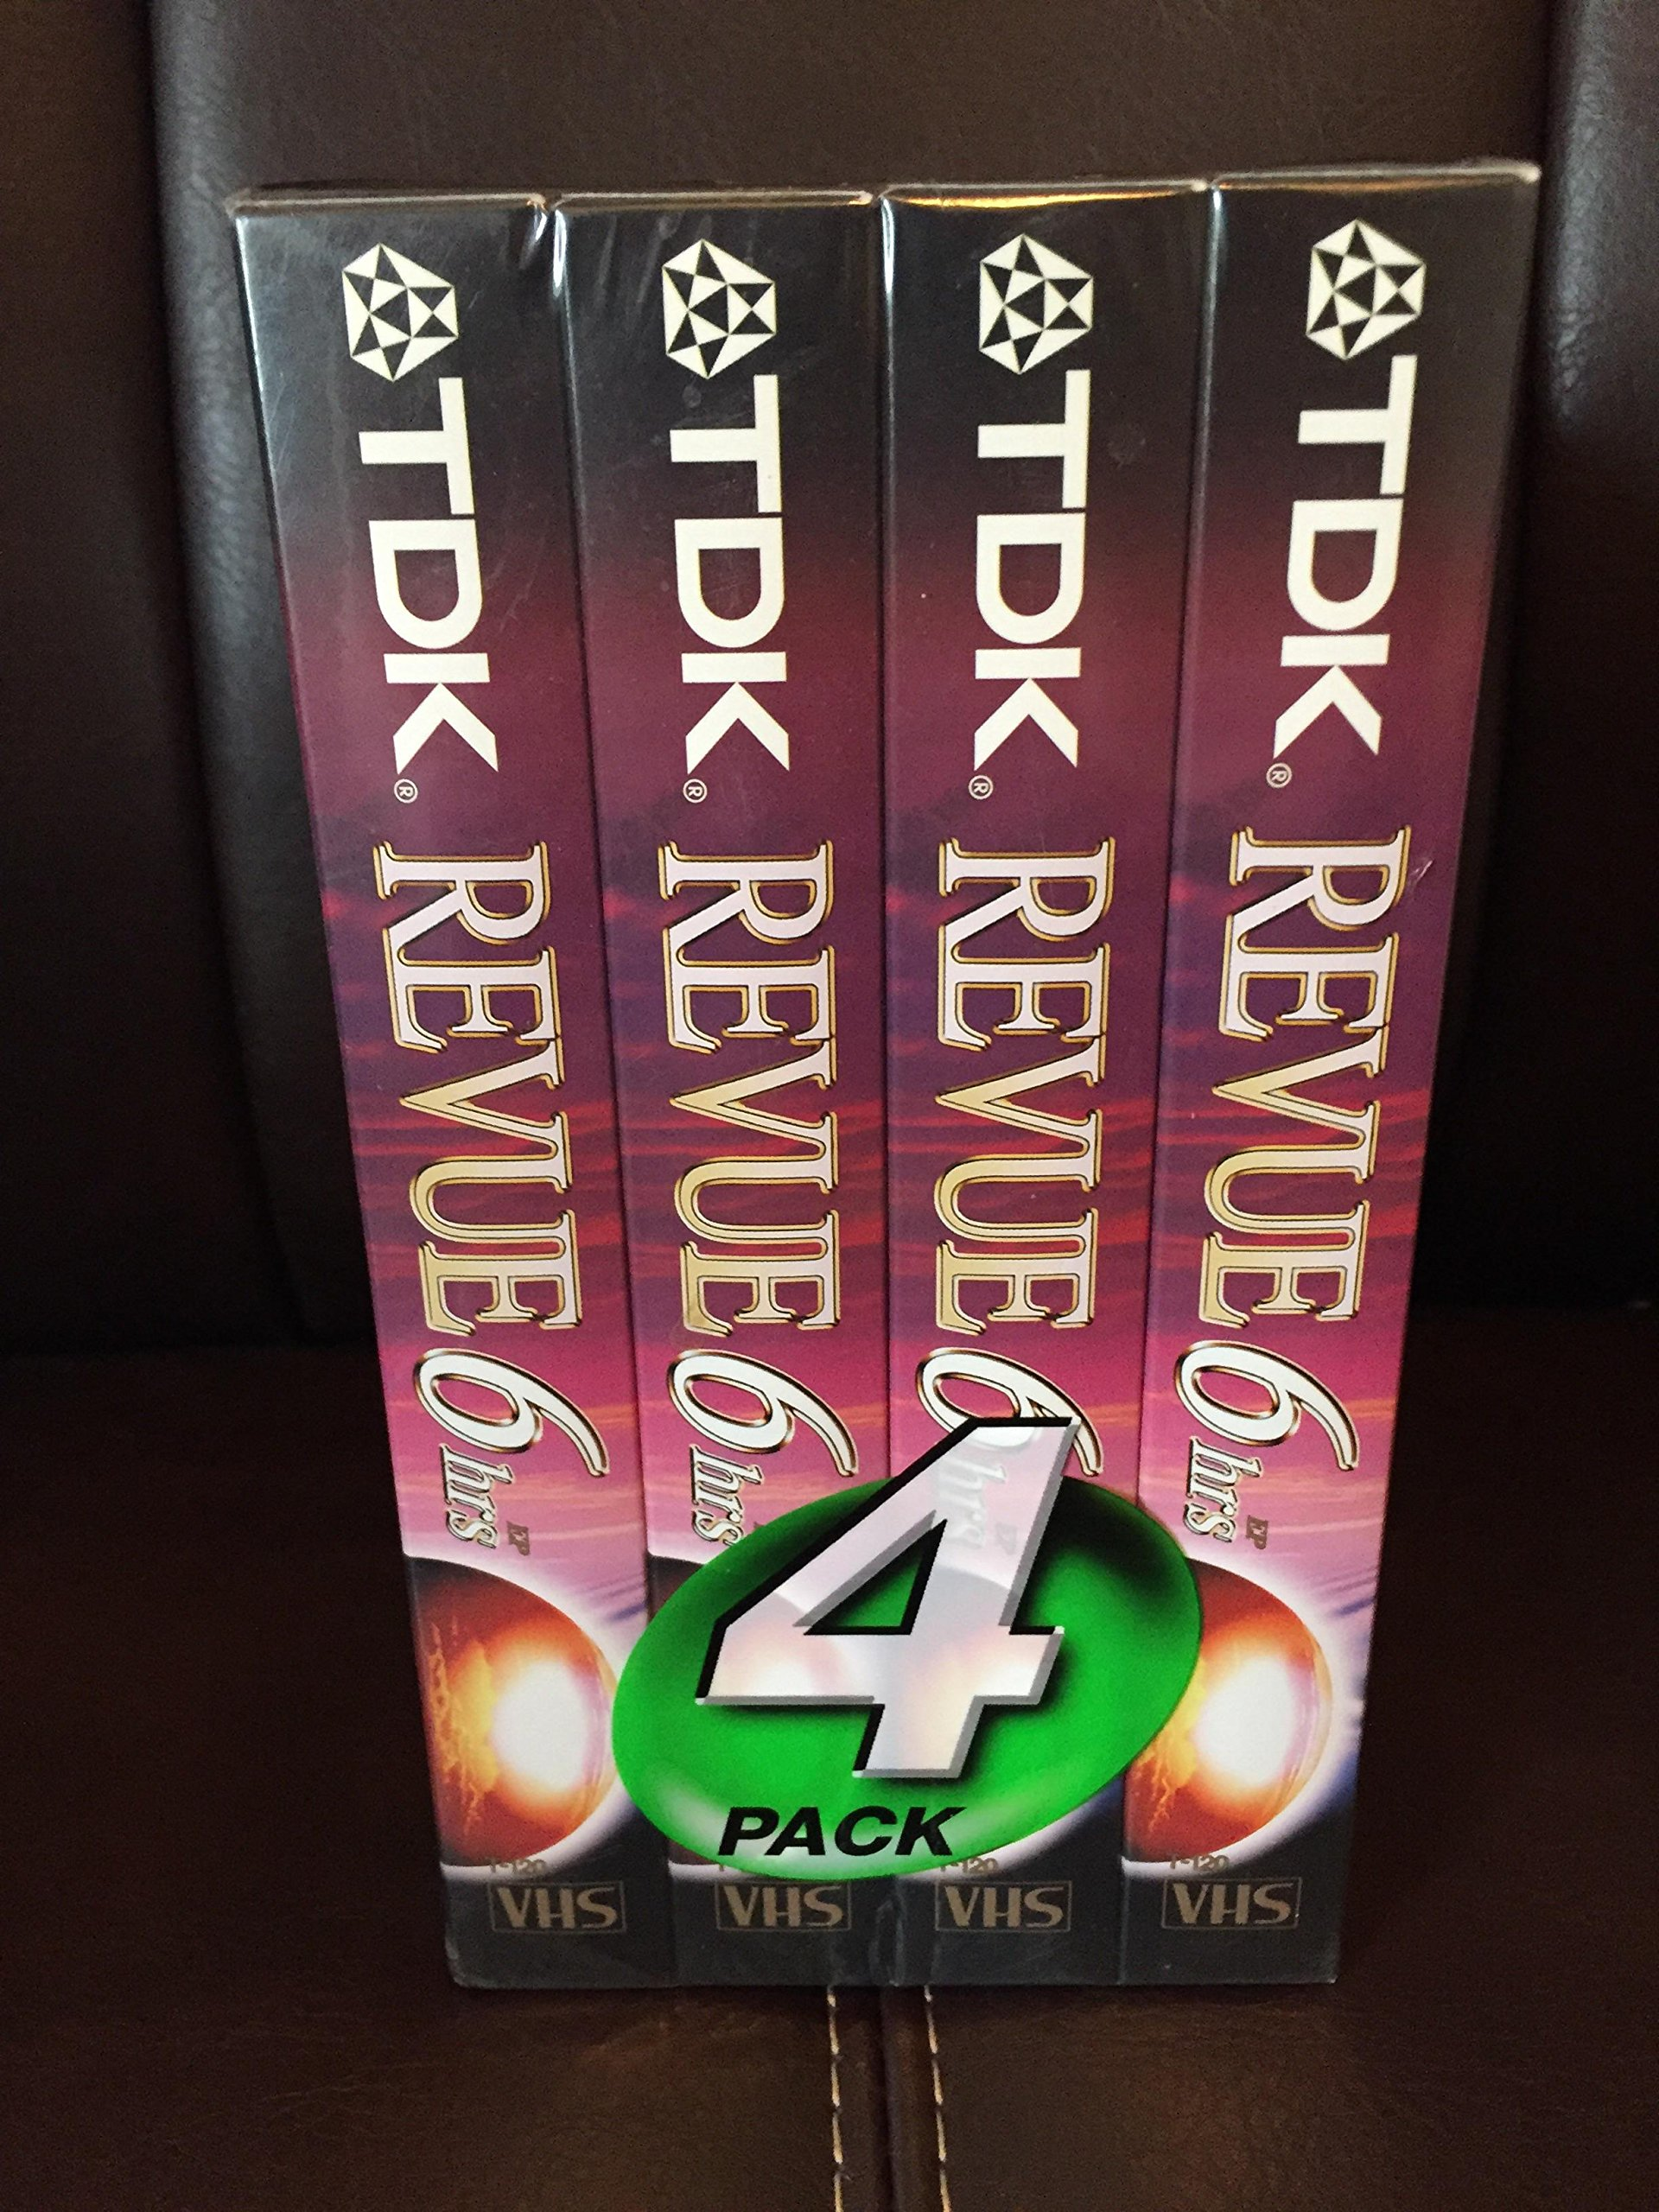 TDK 4 Pack T-120 VHS Video Tape by TDK